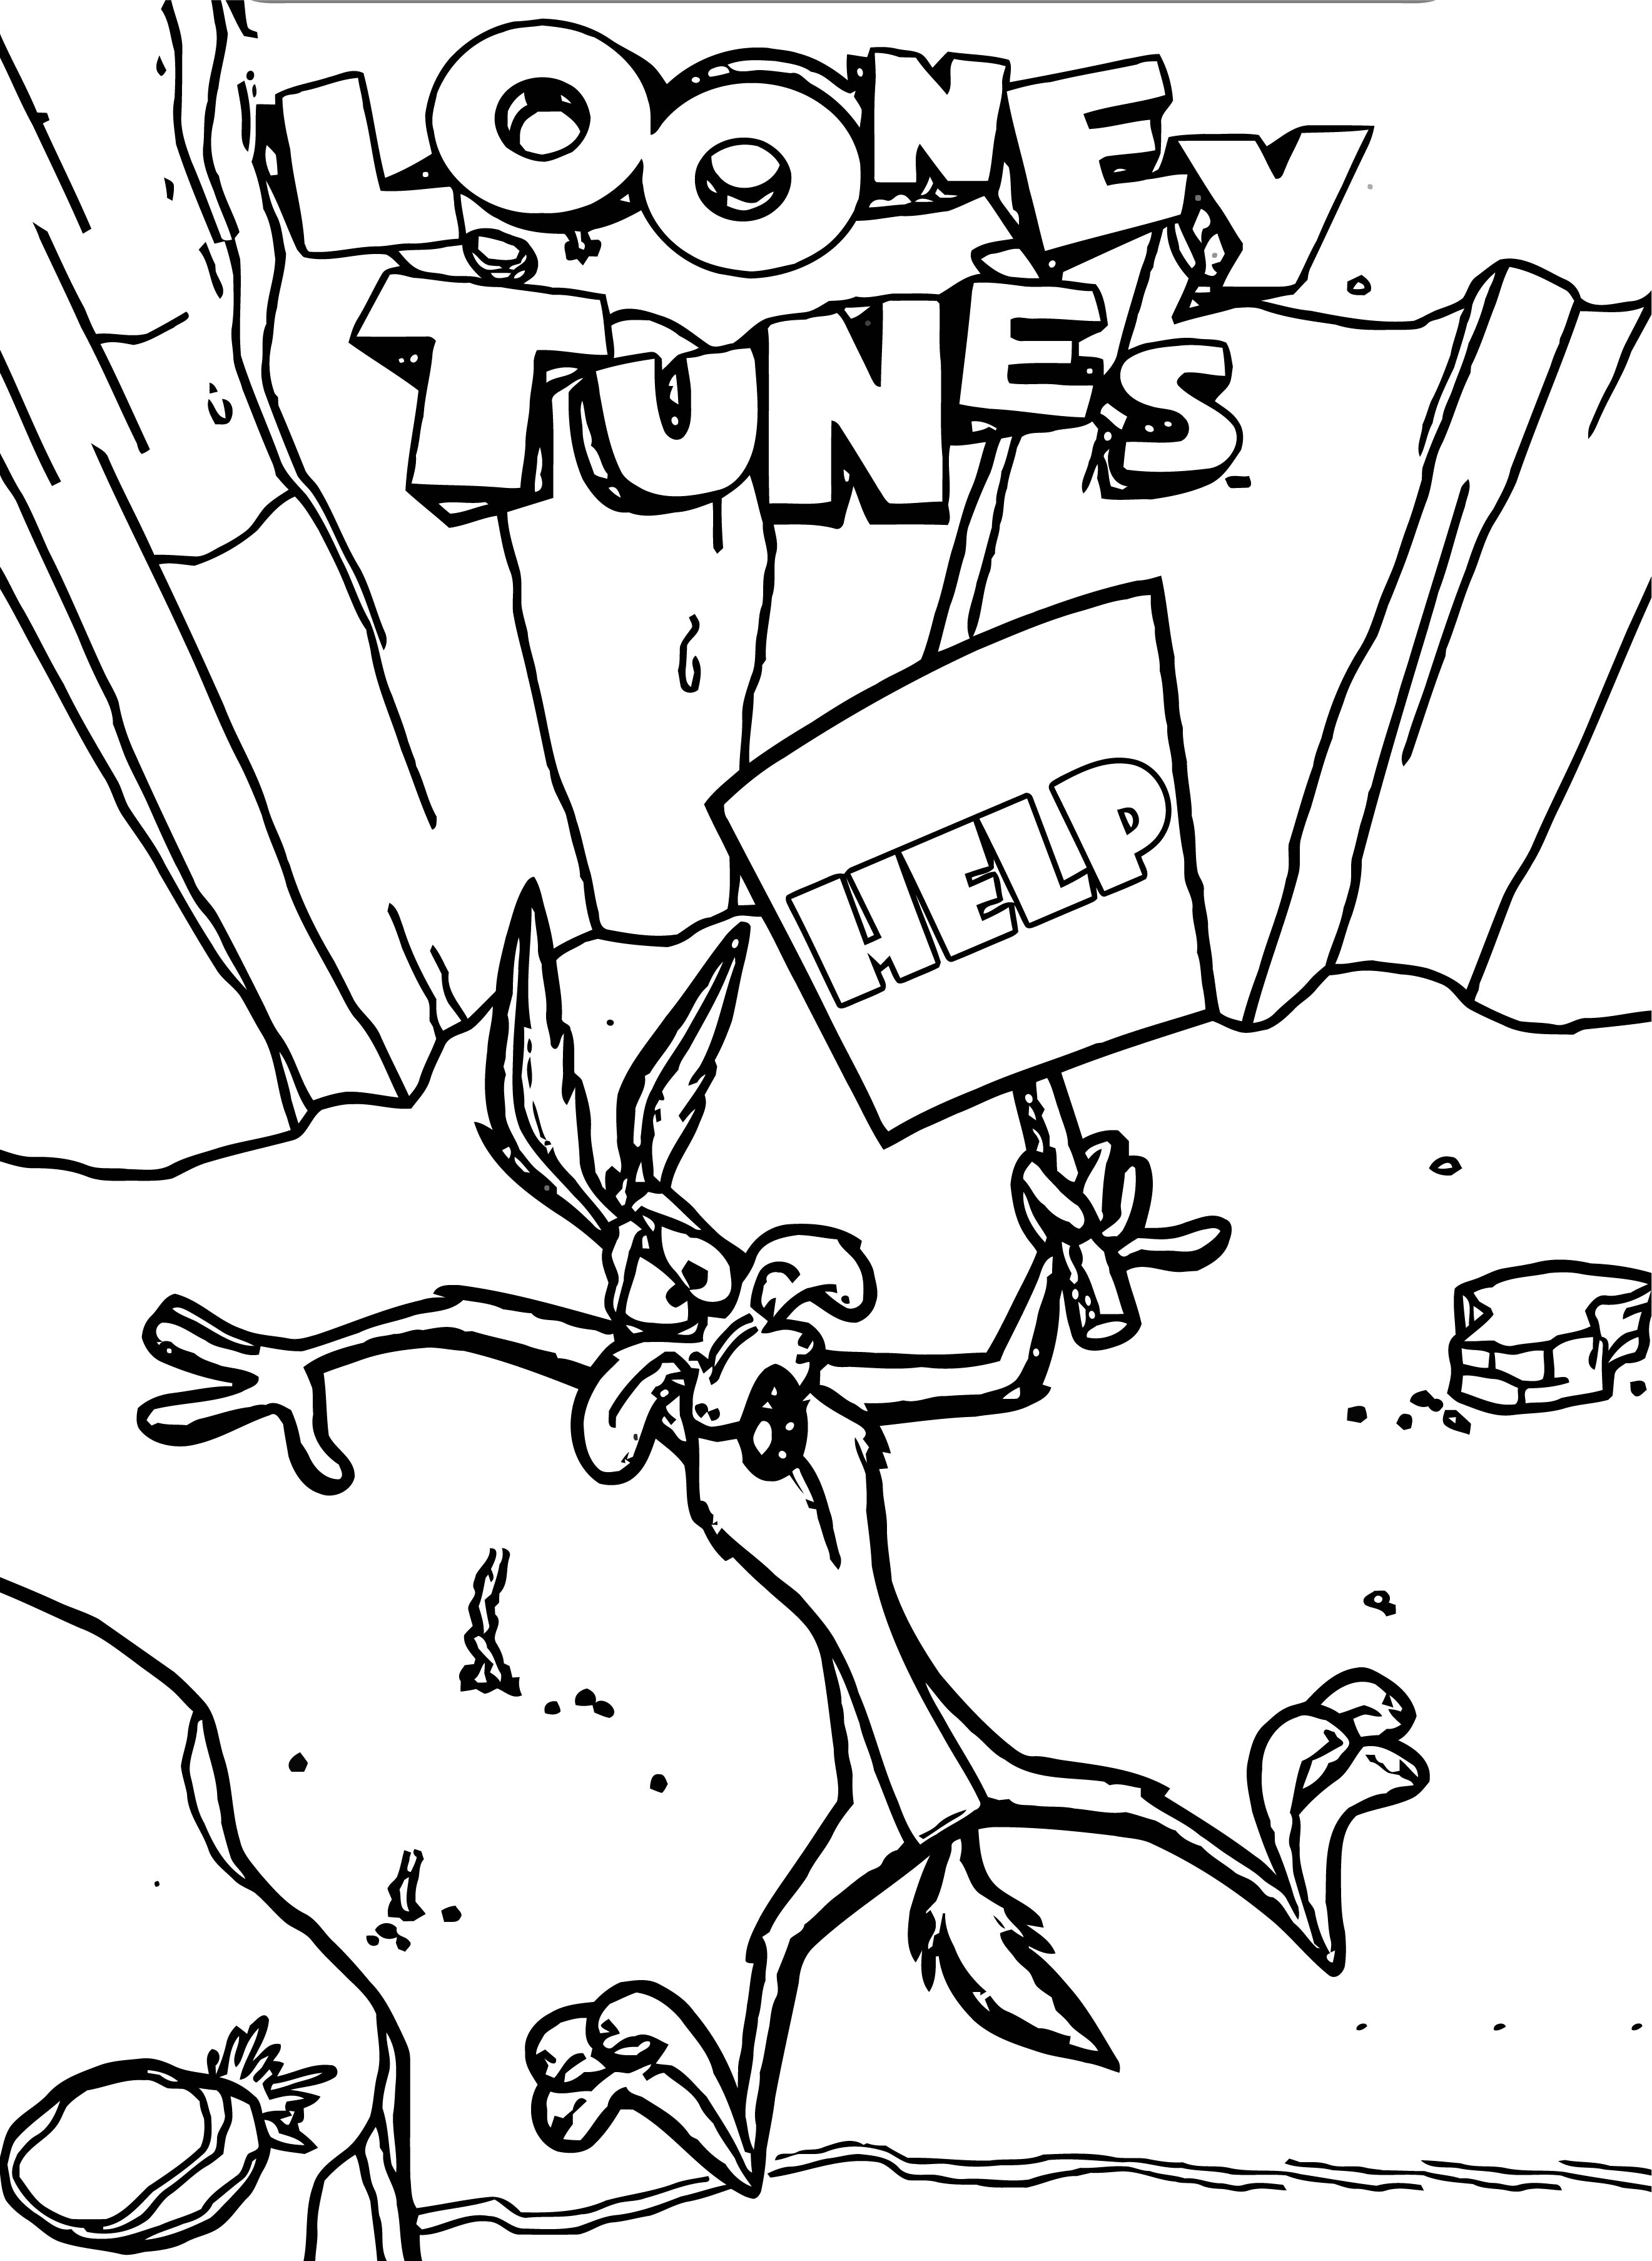 Looney Tunes Vol 1 93 The Looney Tunes Show Coloring Page